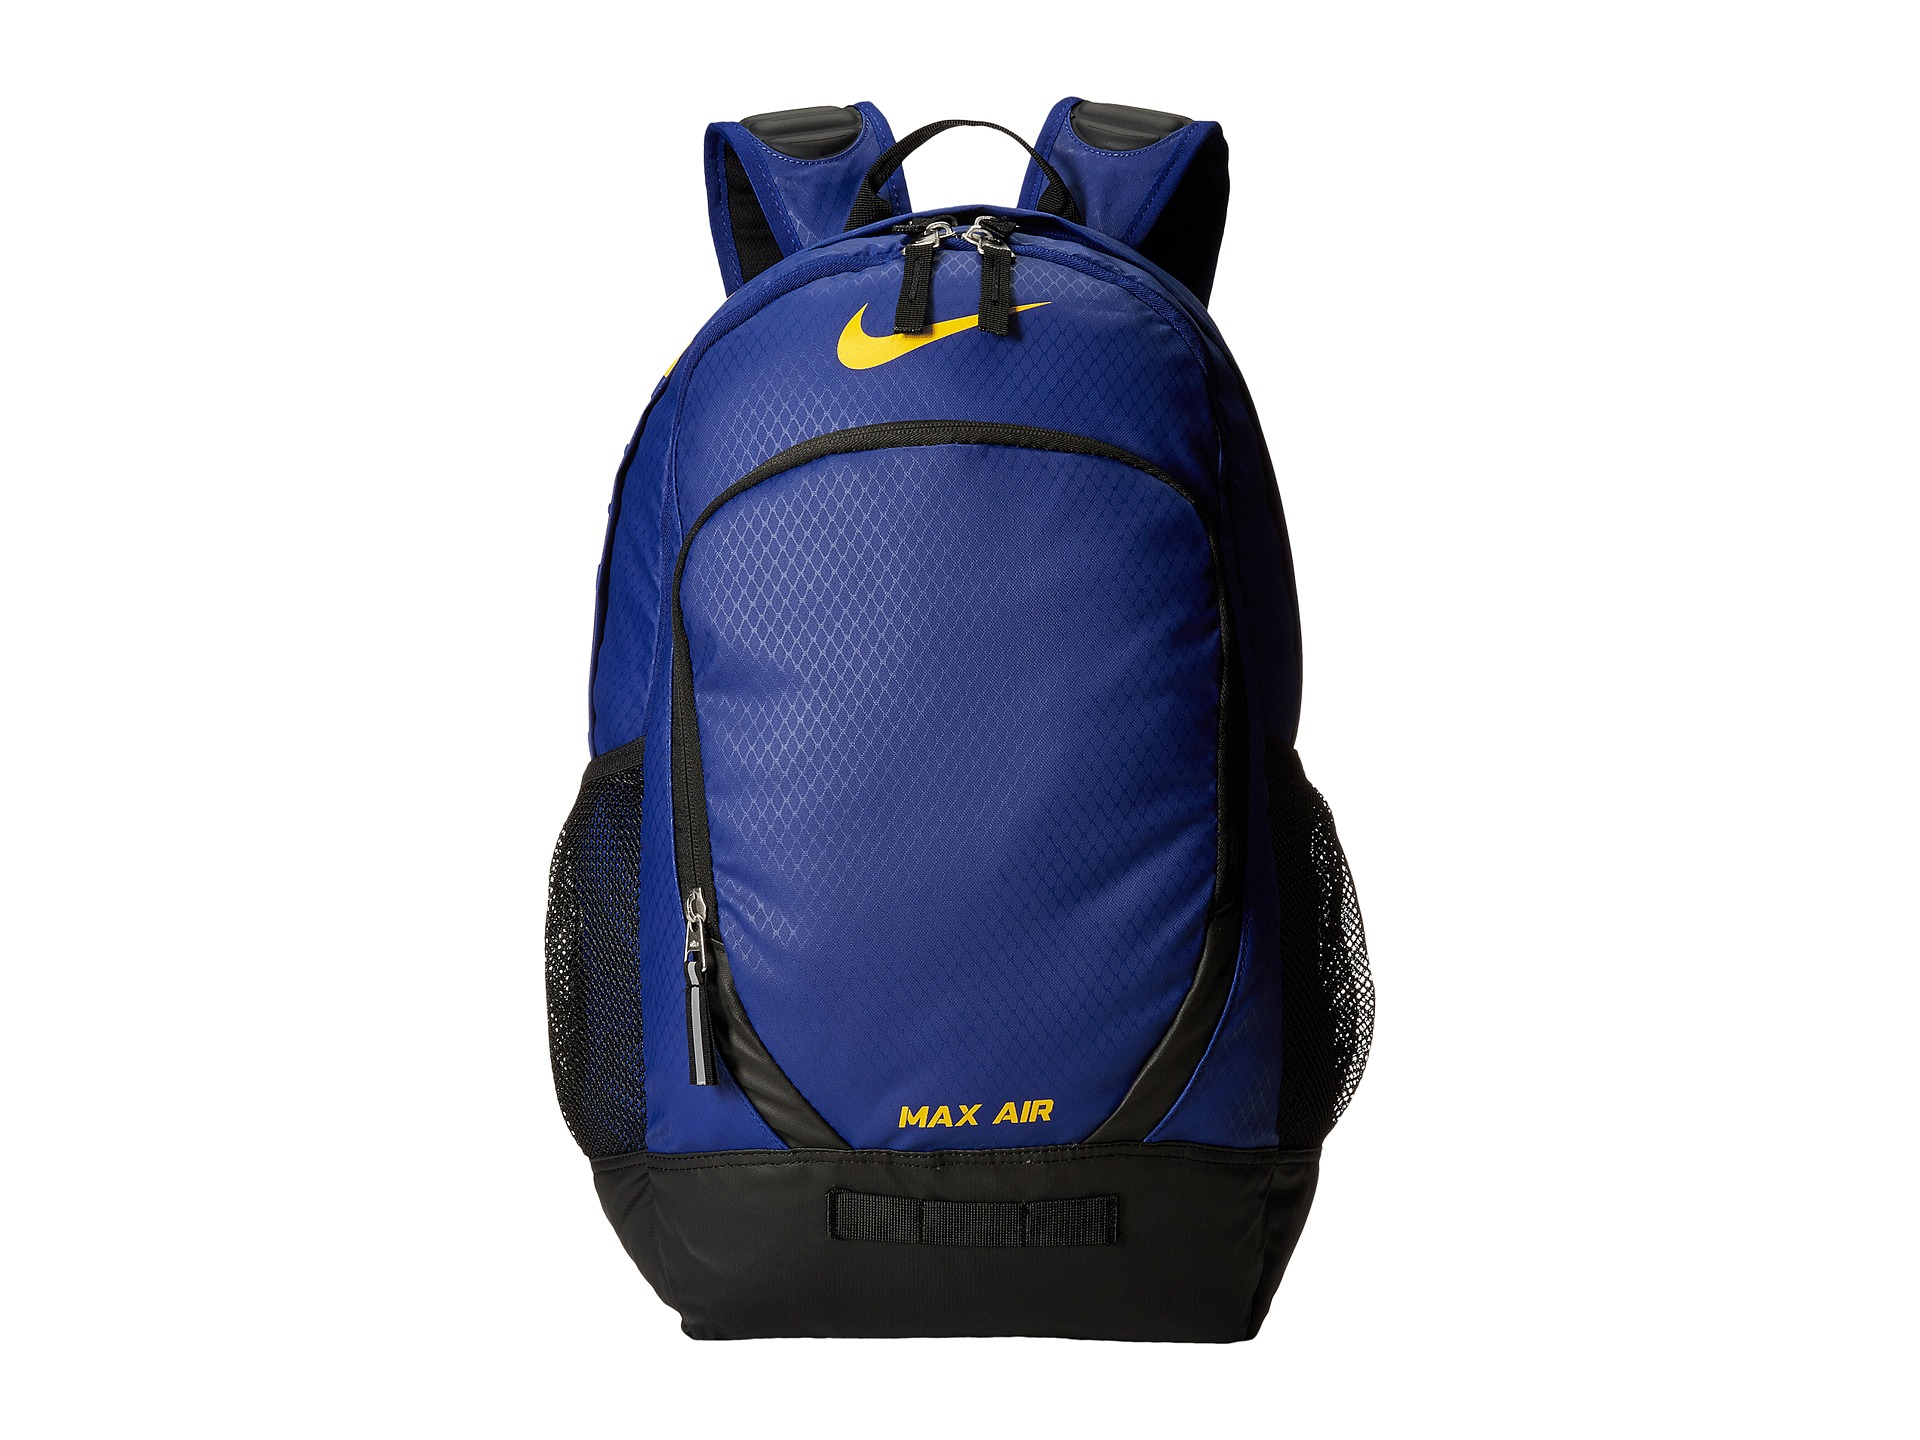 Lyst - Nike Team Training Max Air Large Backpack in Blue 6722f6a88f22d